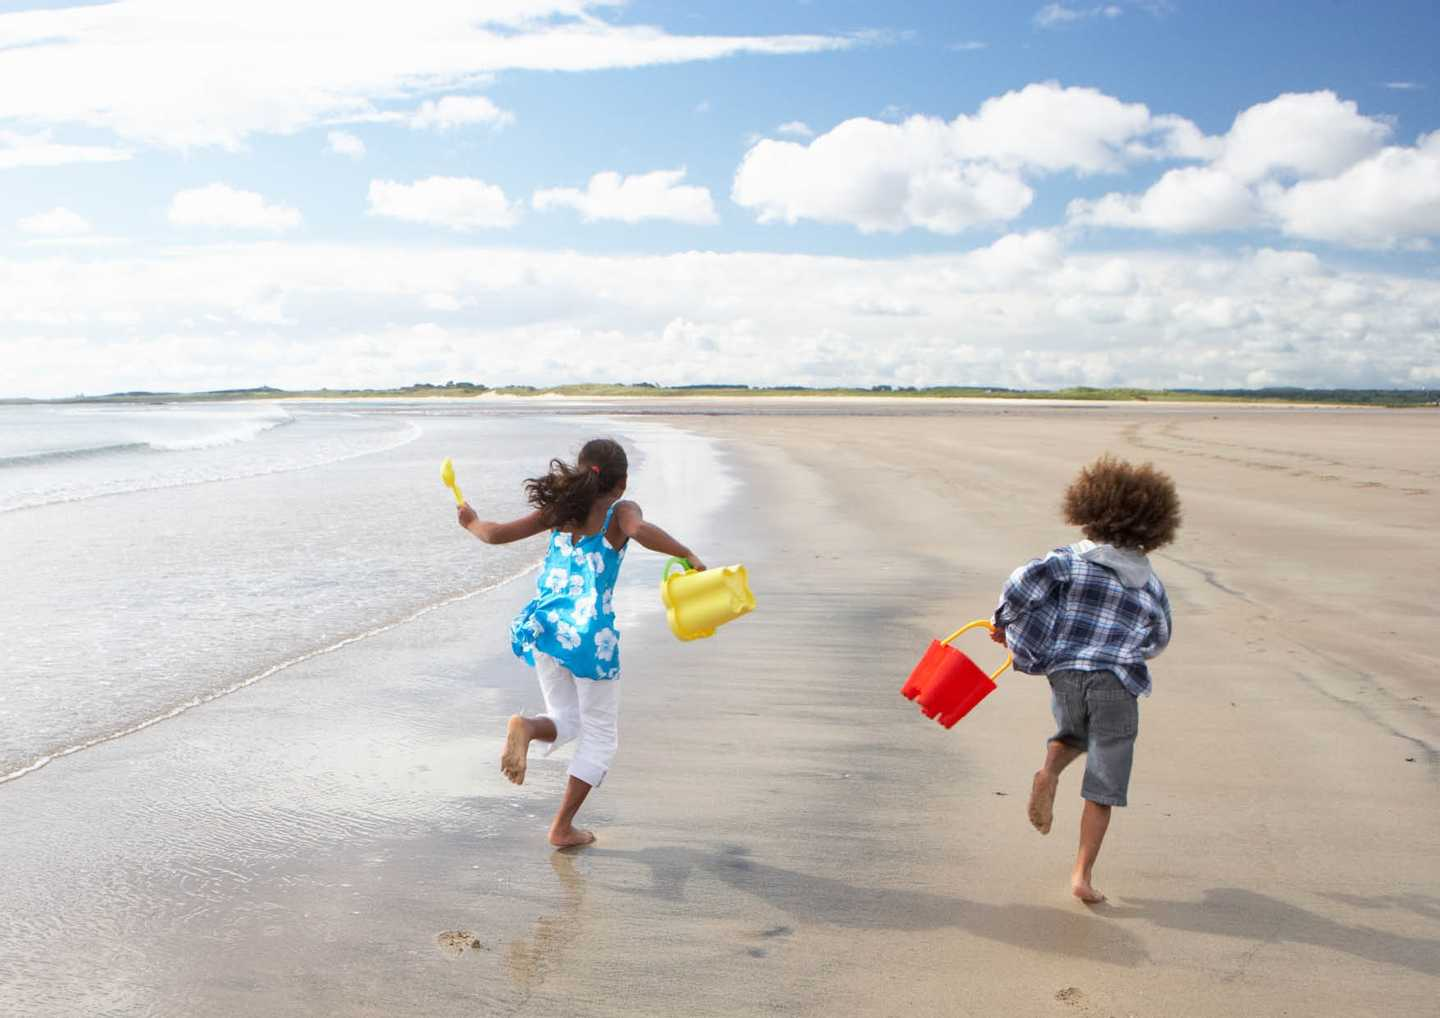 A brother and sister running a long the beach with buckets